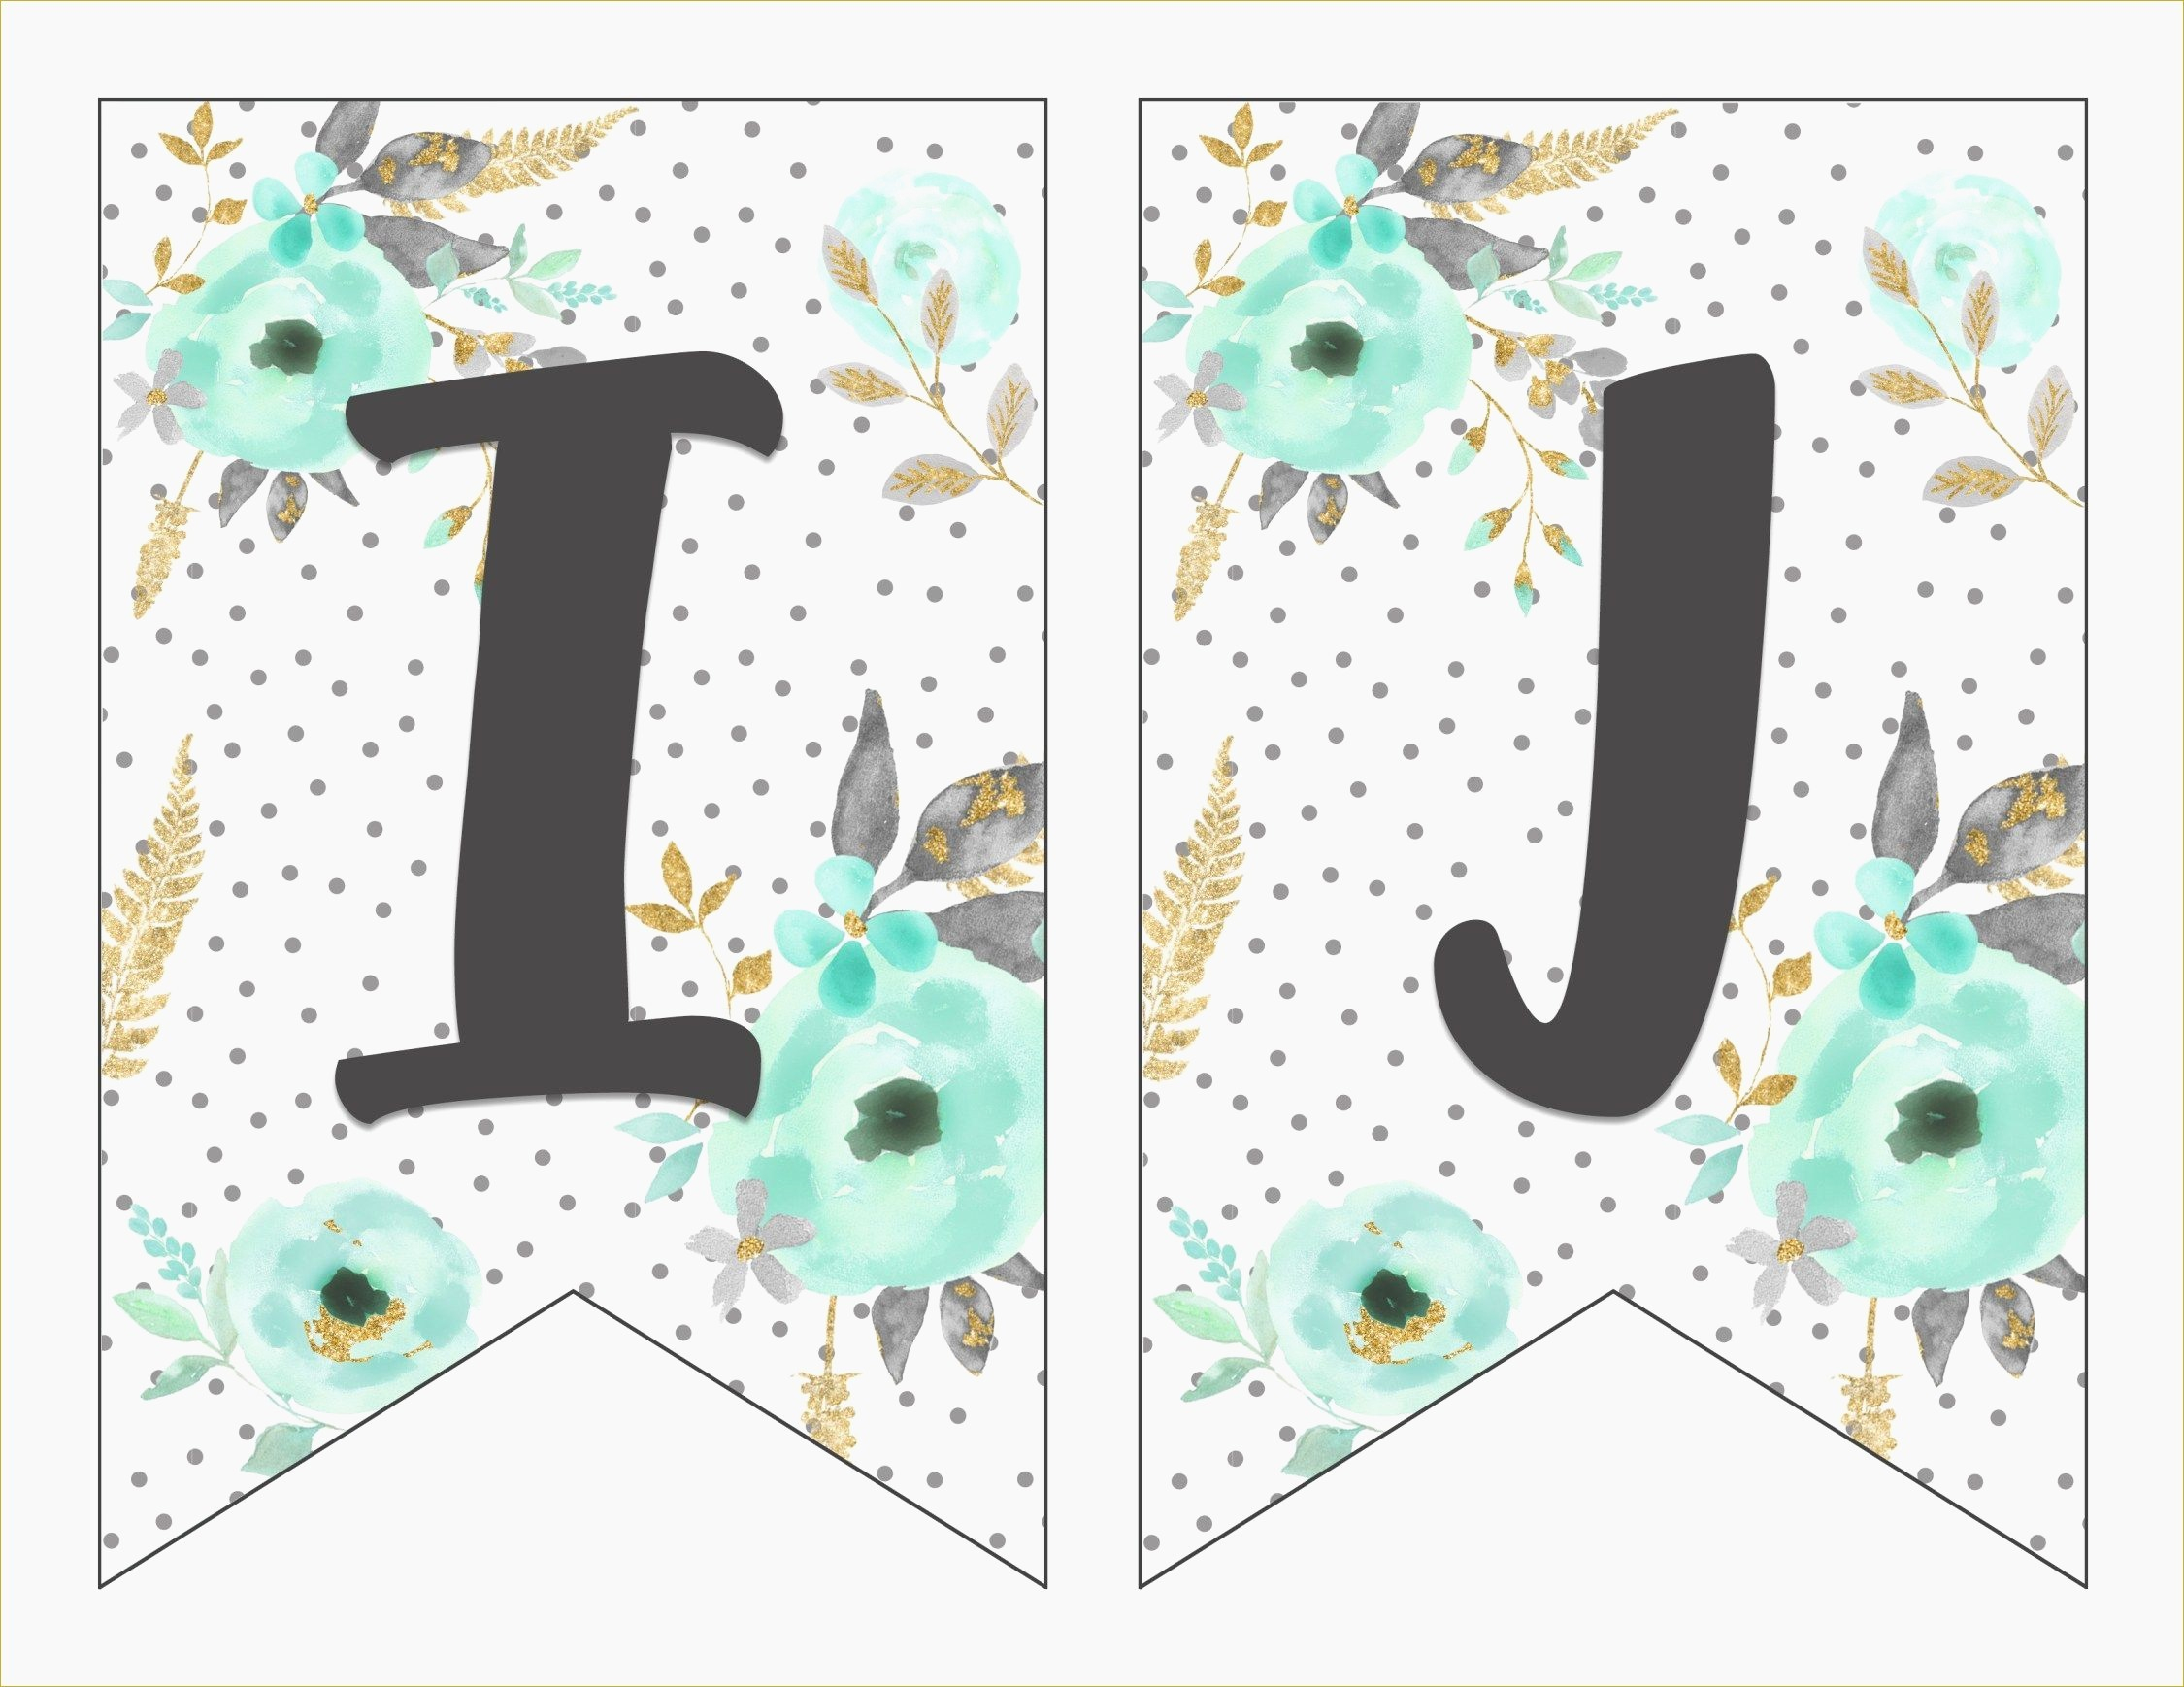 Beautiful Free Printable Alphabet Letters For Banners | Www.pantry - Free Printable Alphabet Letters For Banners